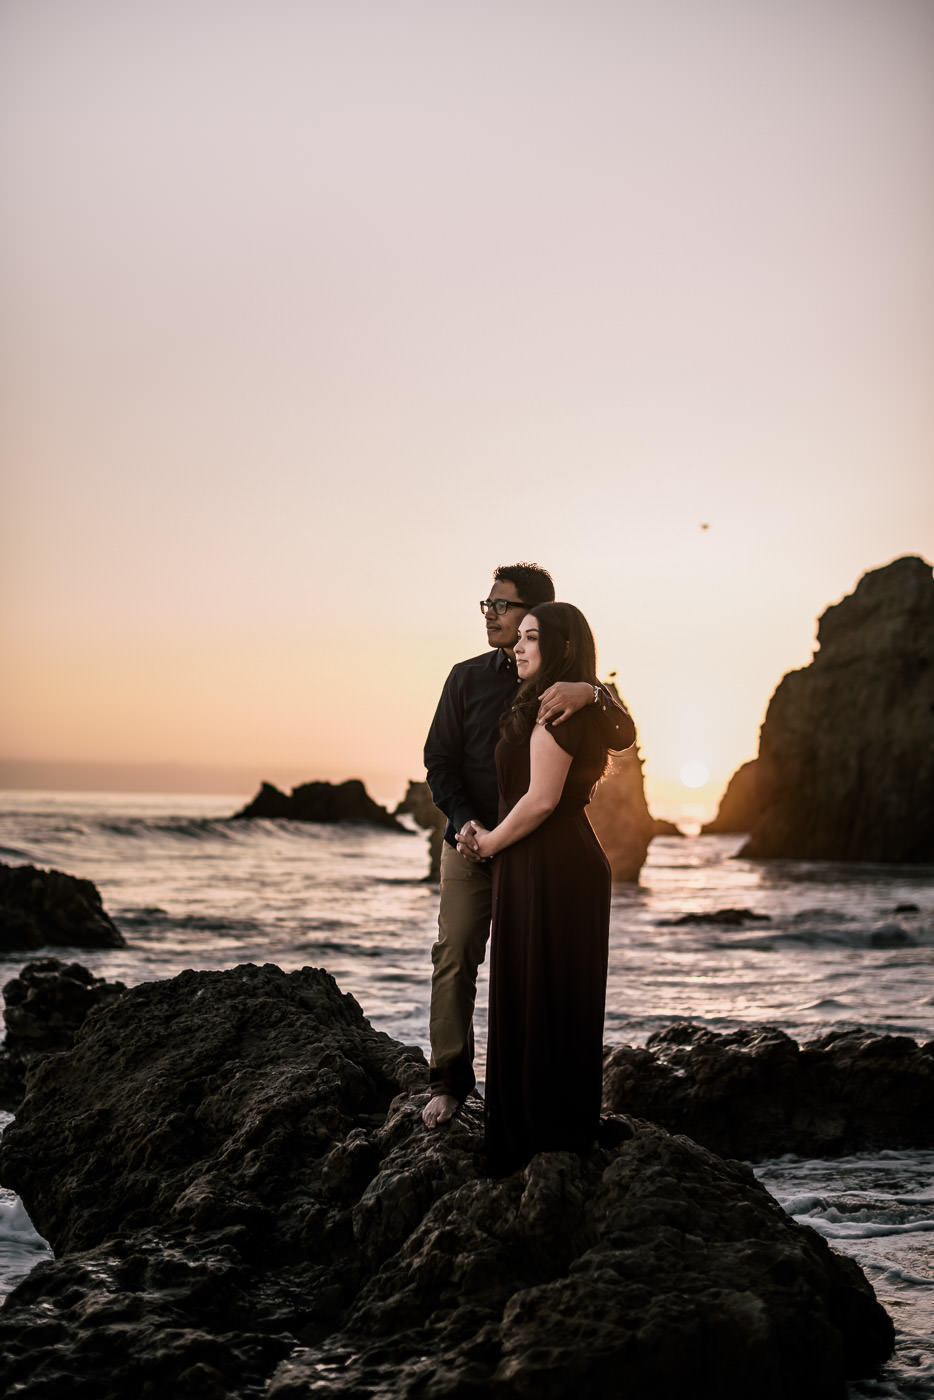 The soft golden light of sunset highlites this loving couple as they stand fast on the rocks with the sea all around them. A Romantic portrait from their El Matador Beach Engagement session in Malibu California.